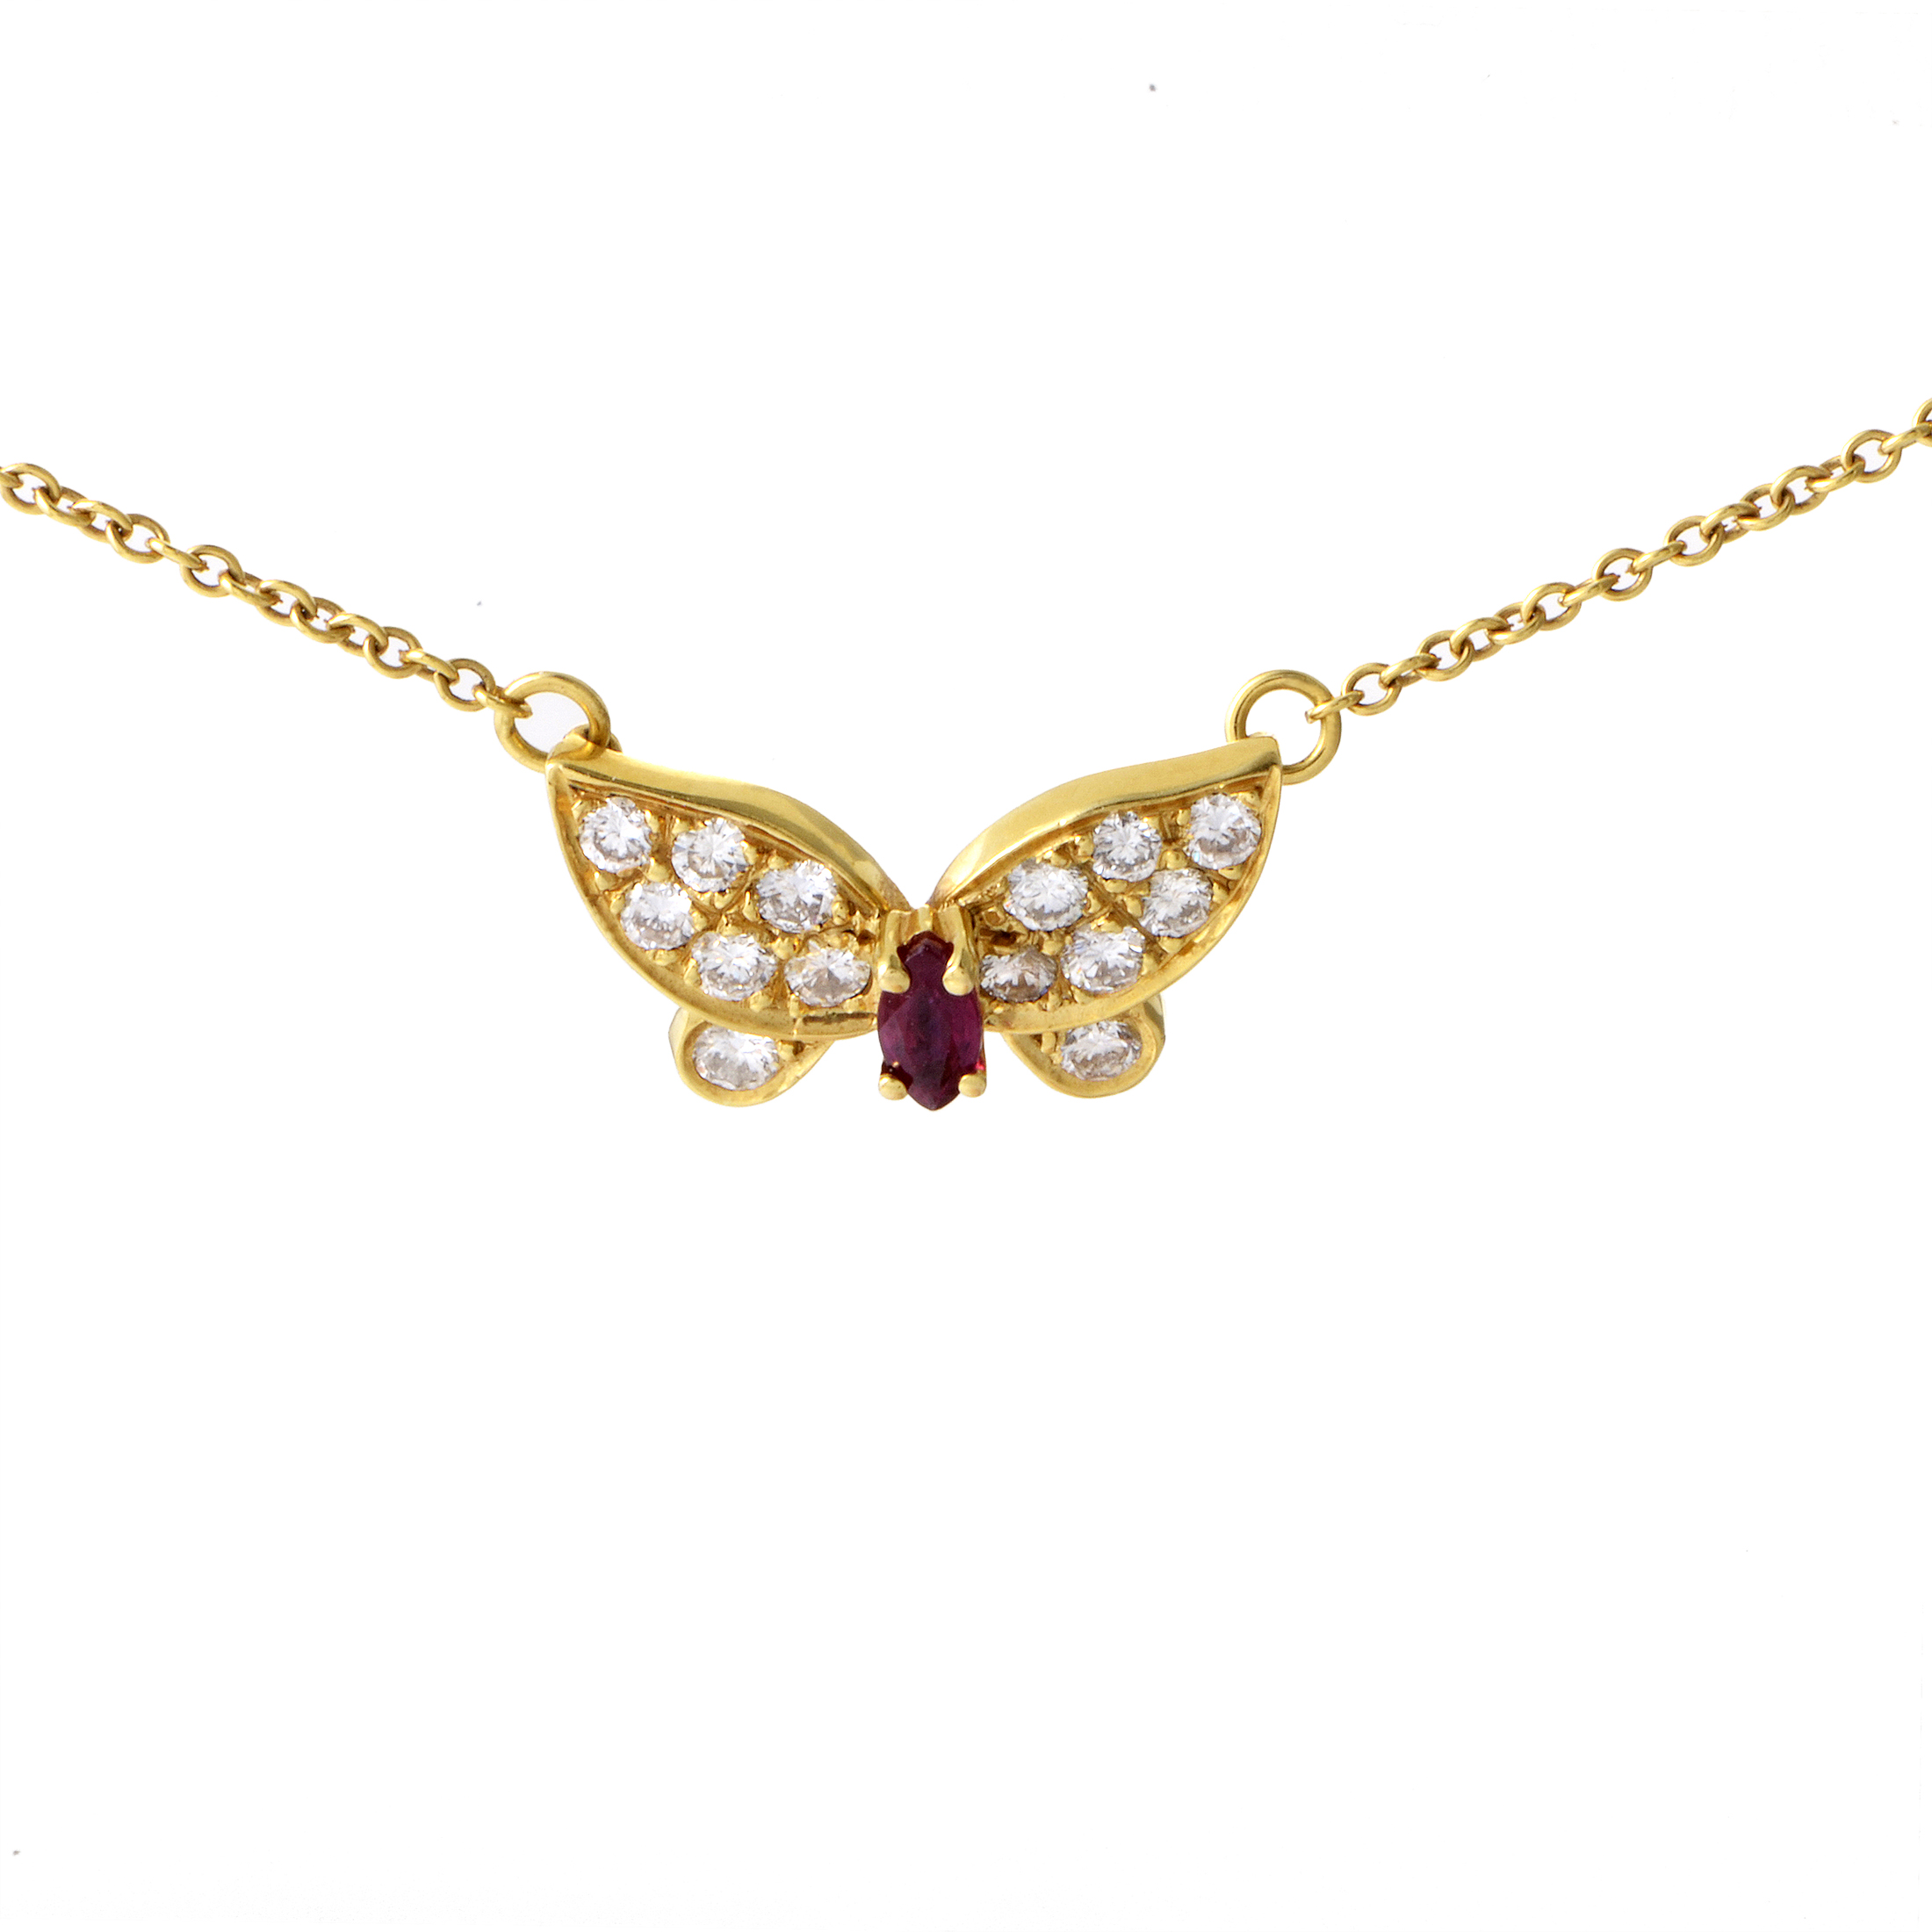 Van Cleef & Arpels Women's Yellow Gold Diamond & Ruby Butterfly Pendant Necklace